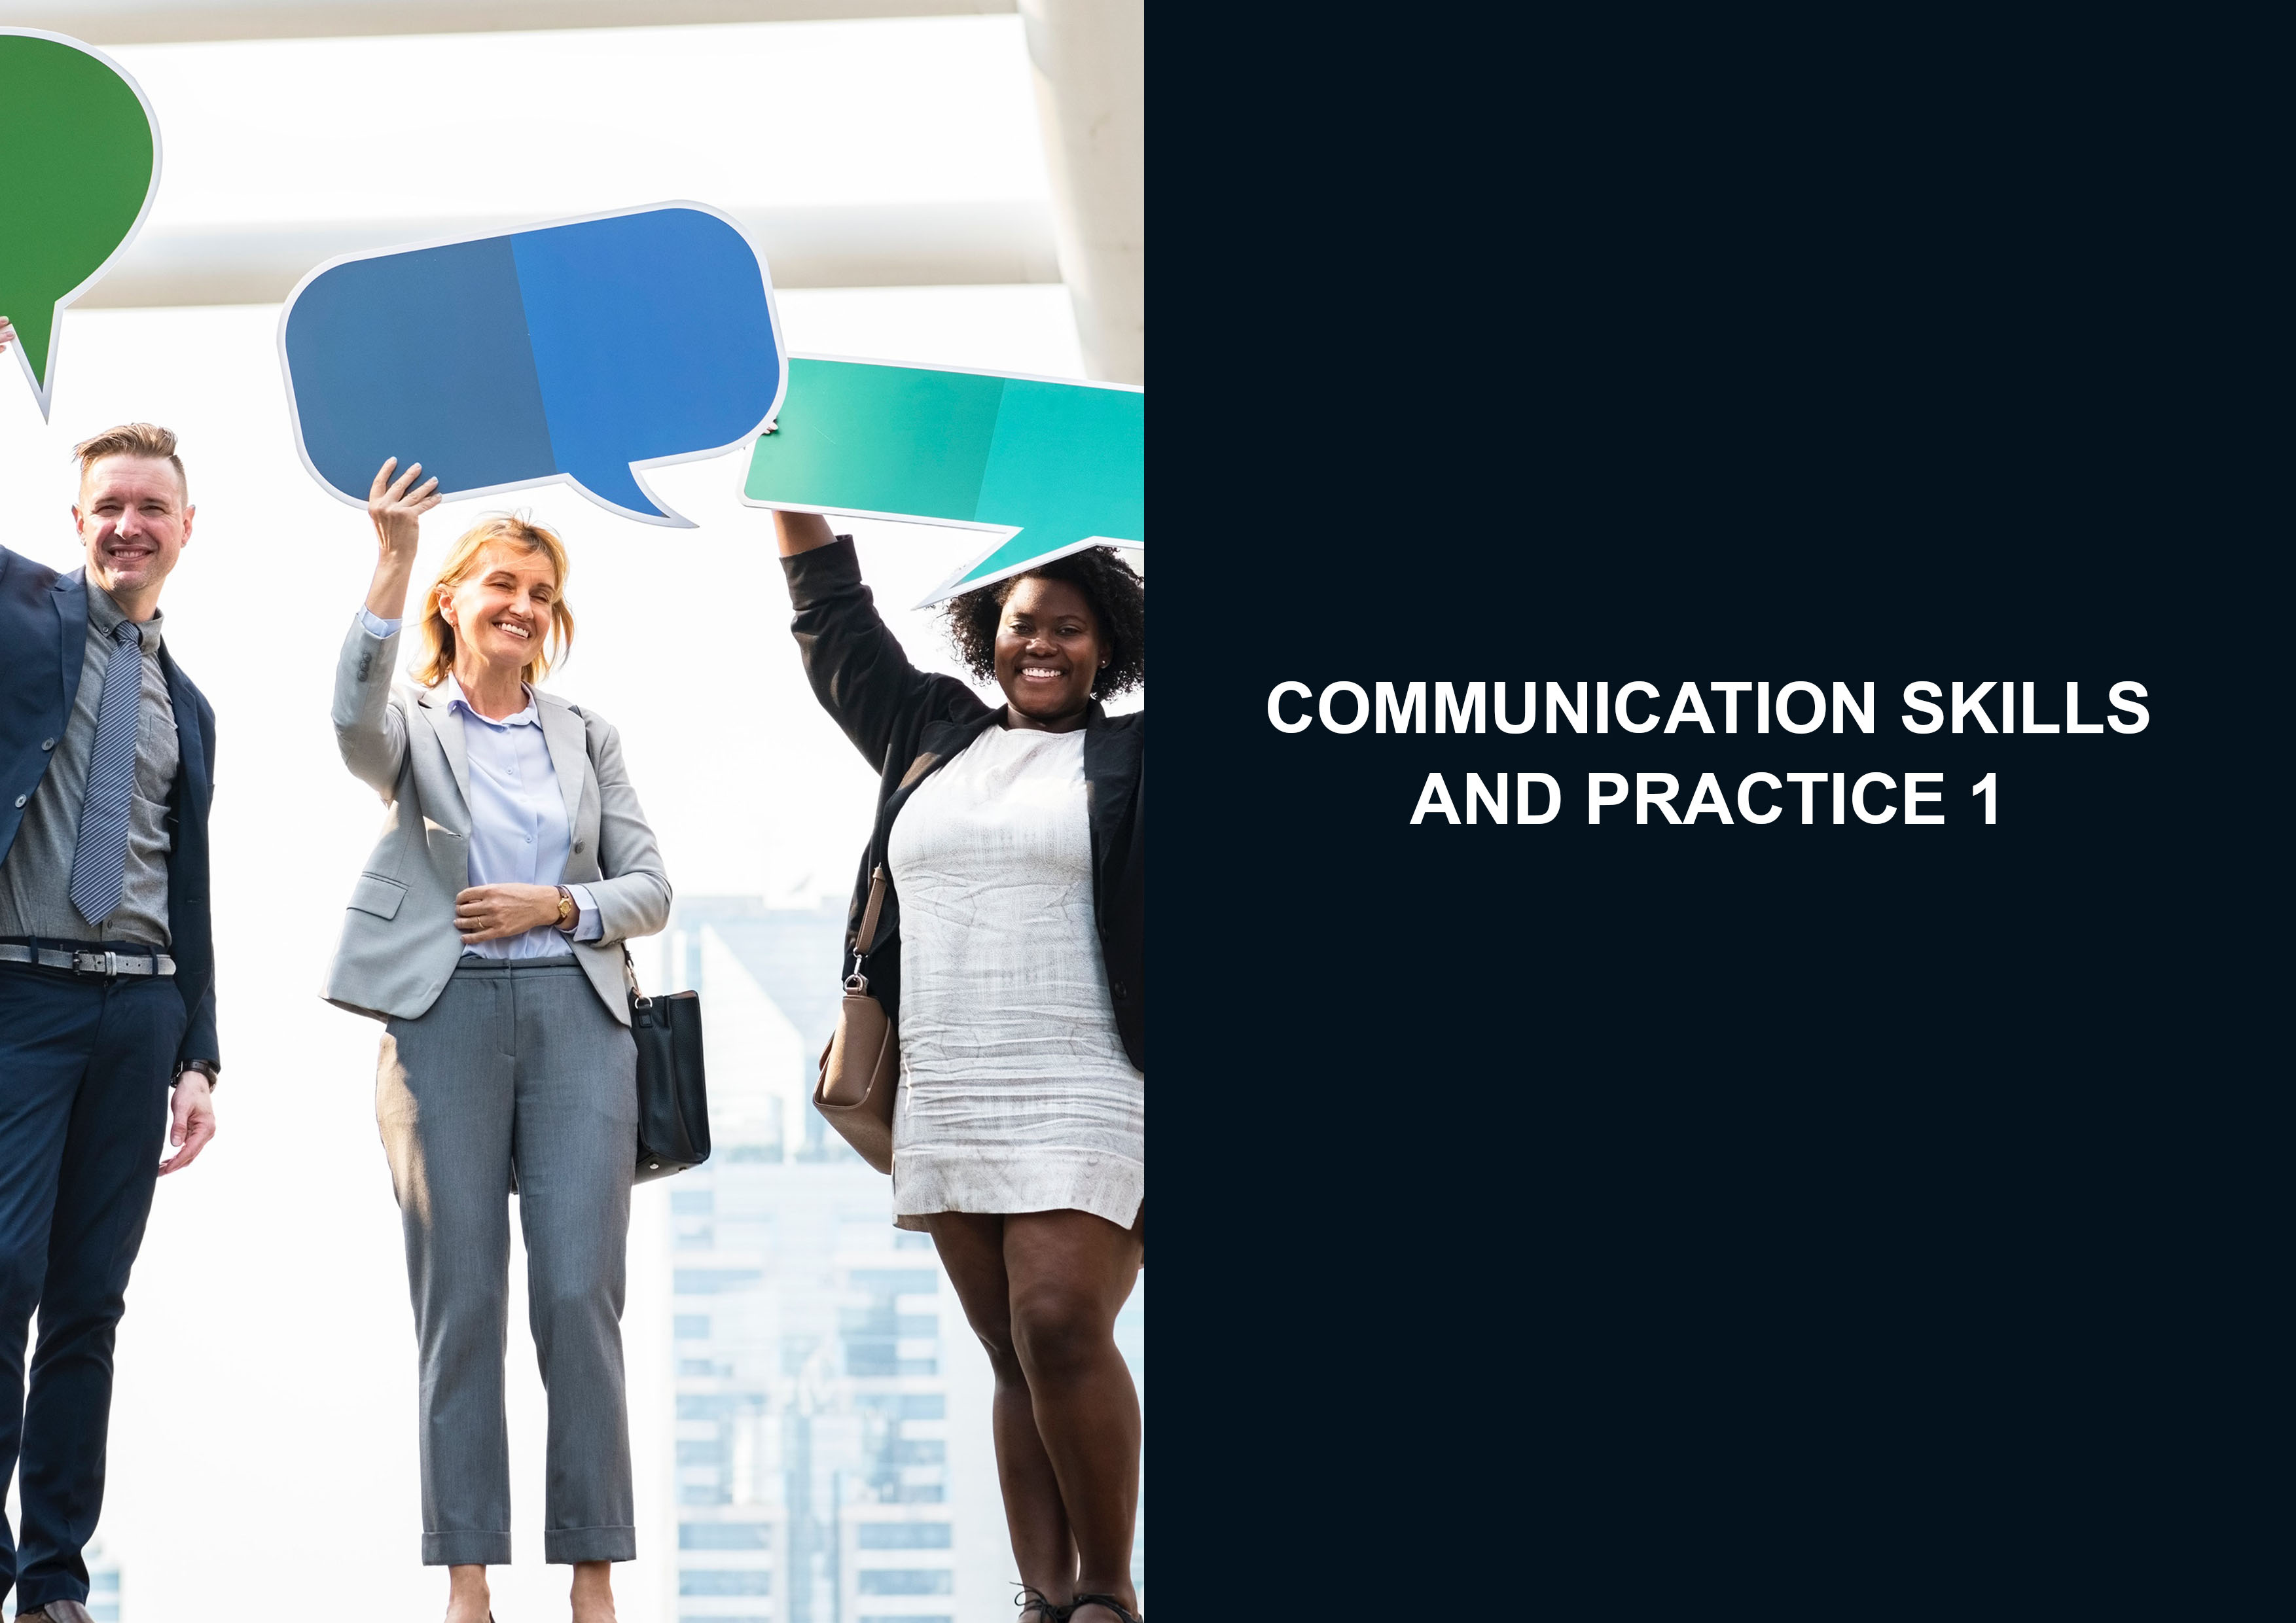 Communication Skills and Practice 1